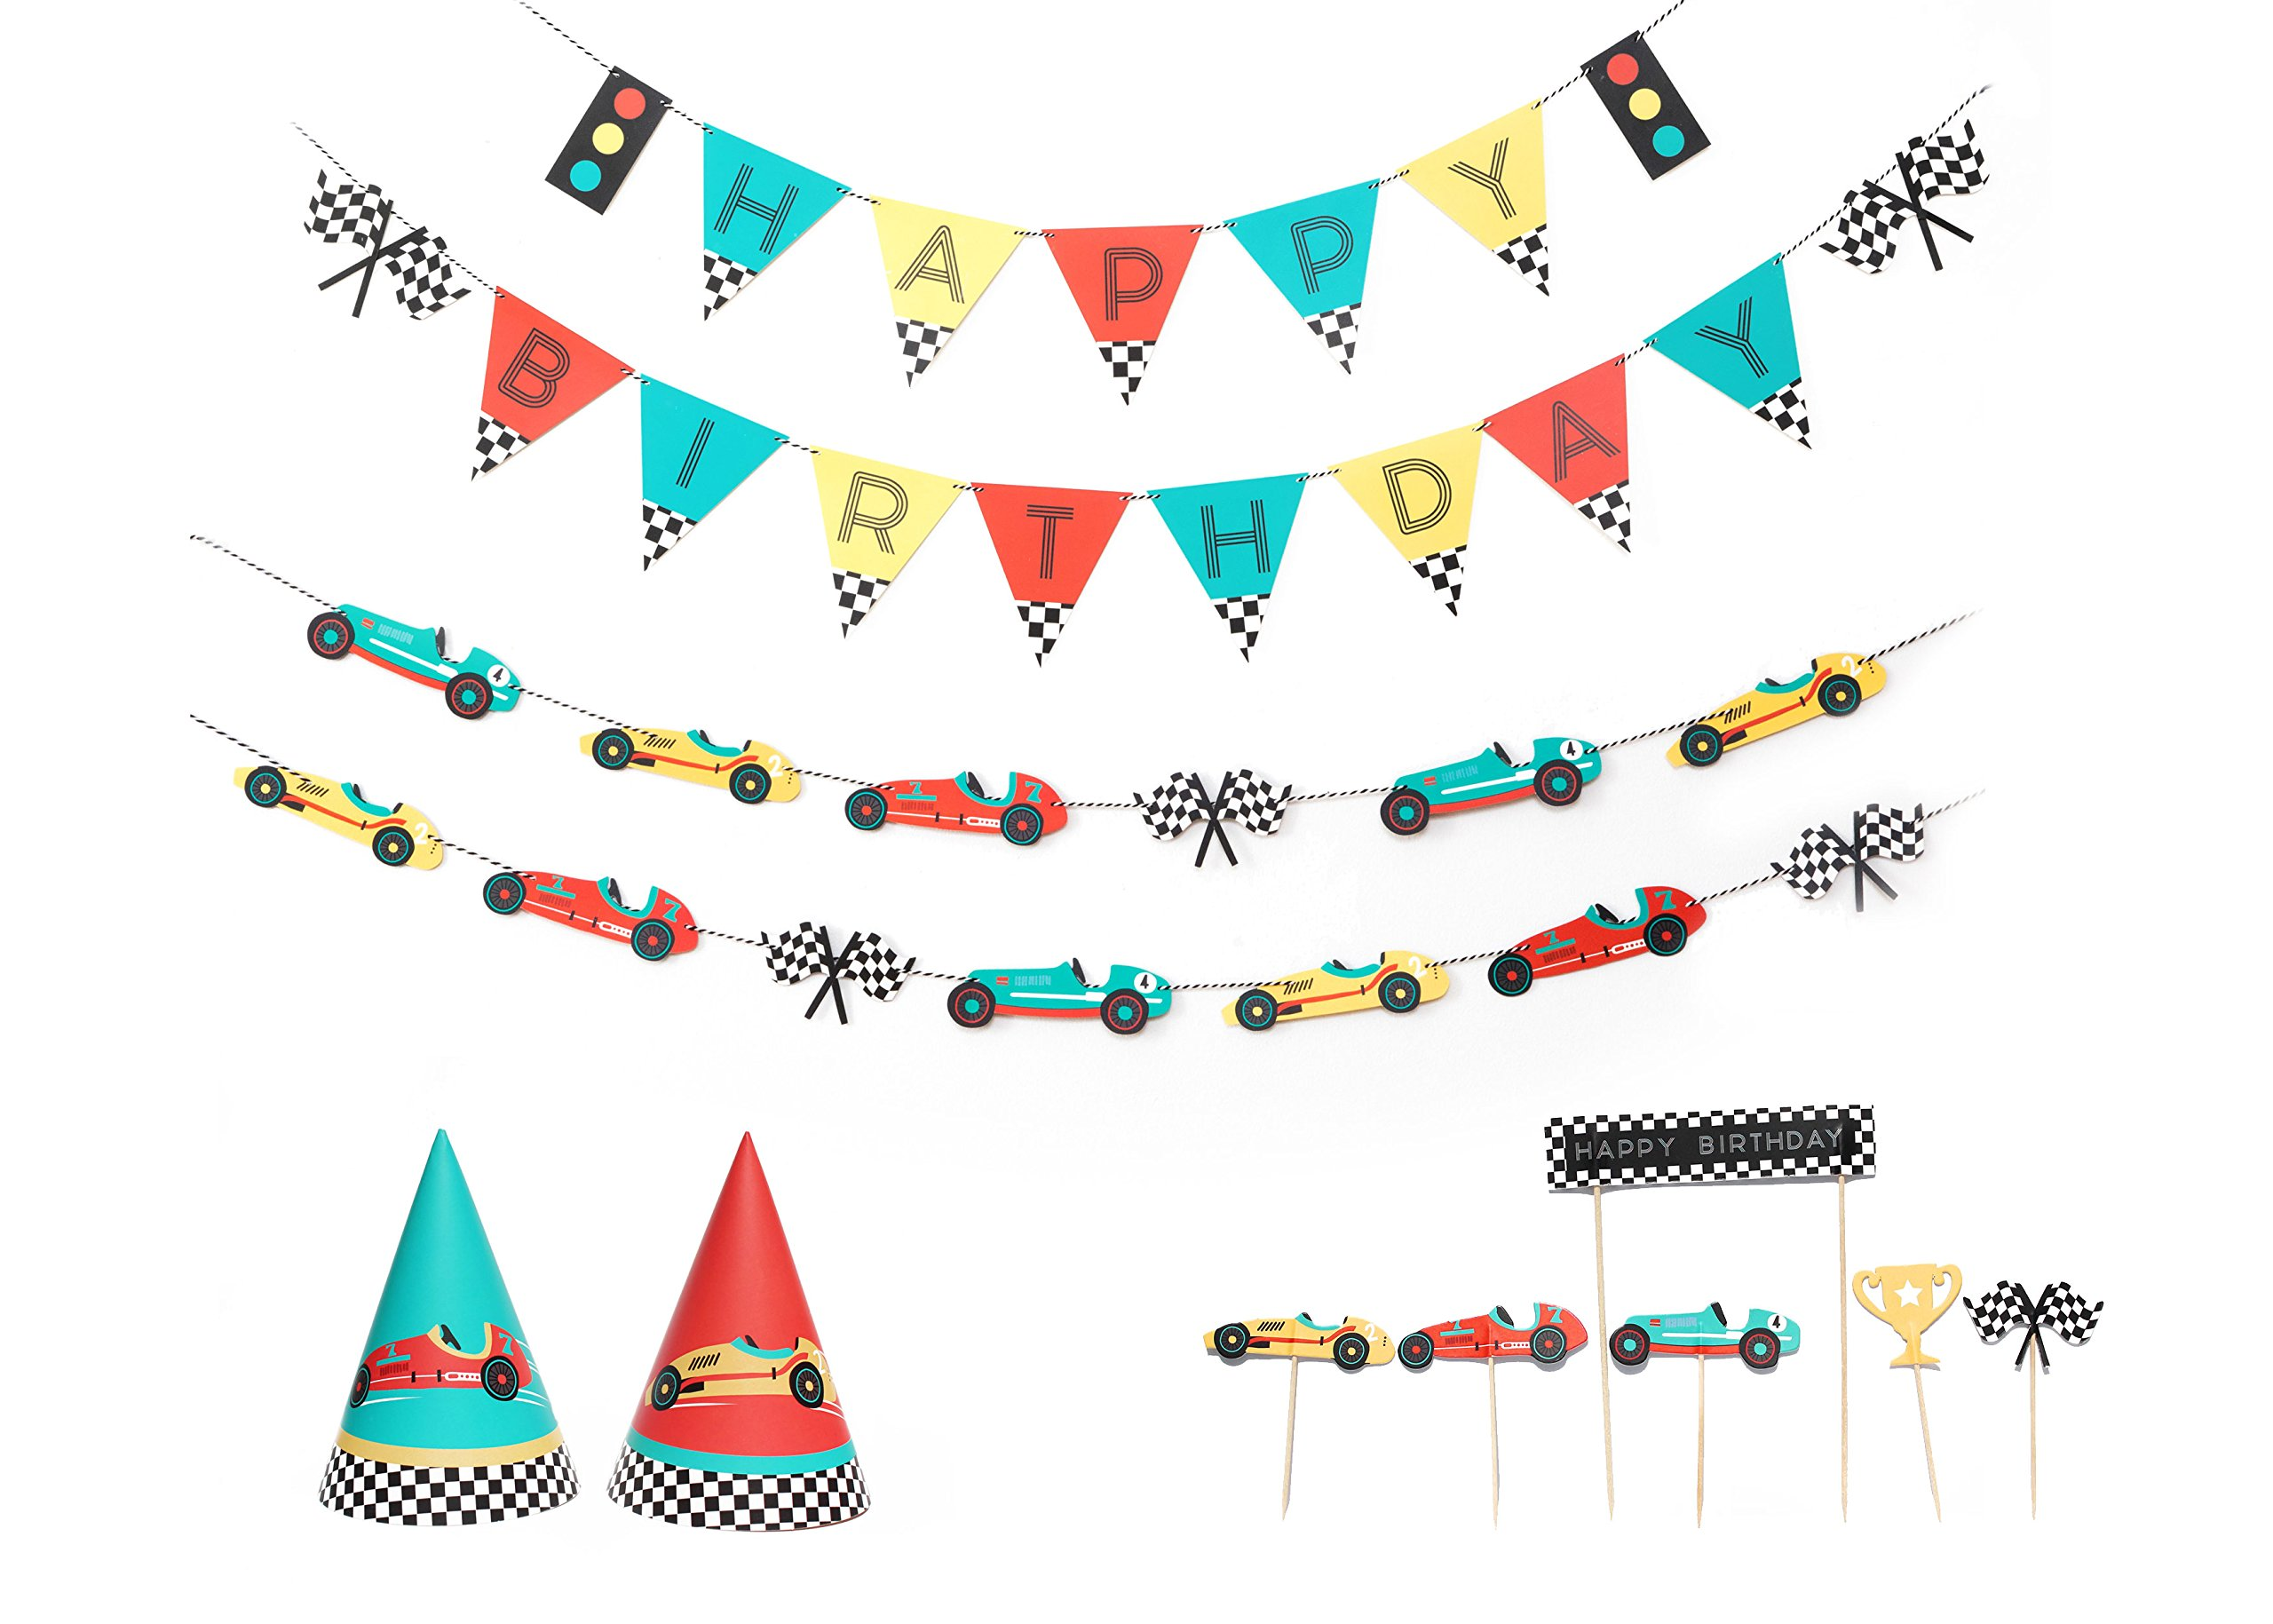 Vintage Race Car - 12 Guest Decor Party Set   Party Package   Theme Birthday Party   Banner, Garland, Cupcake Topper, Party hat